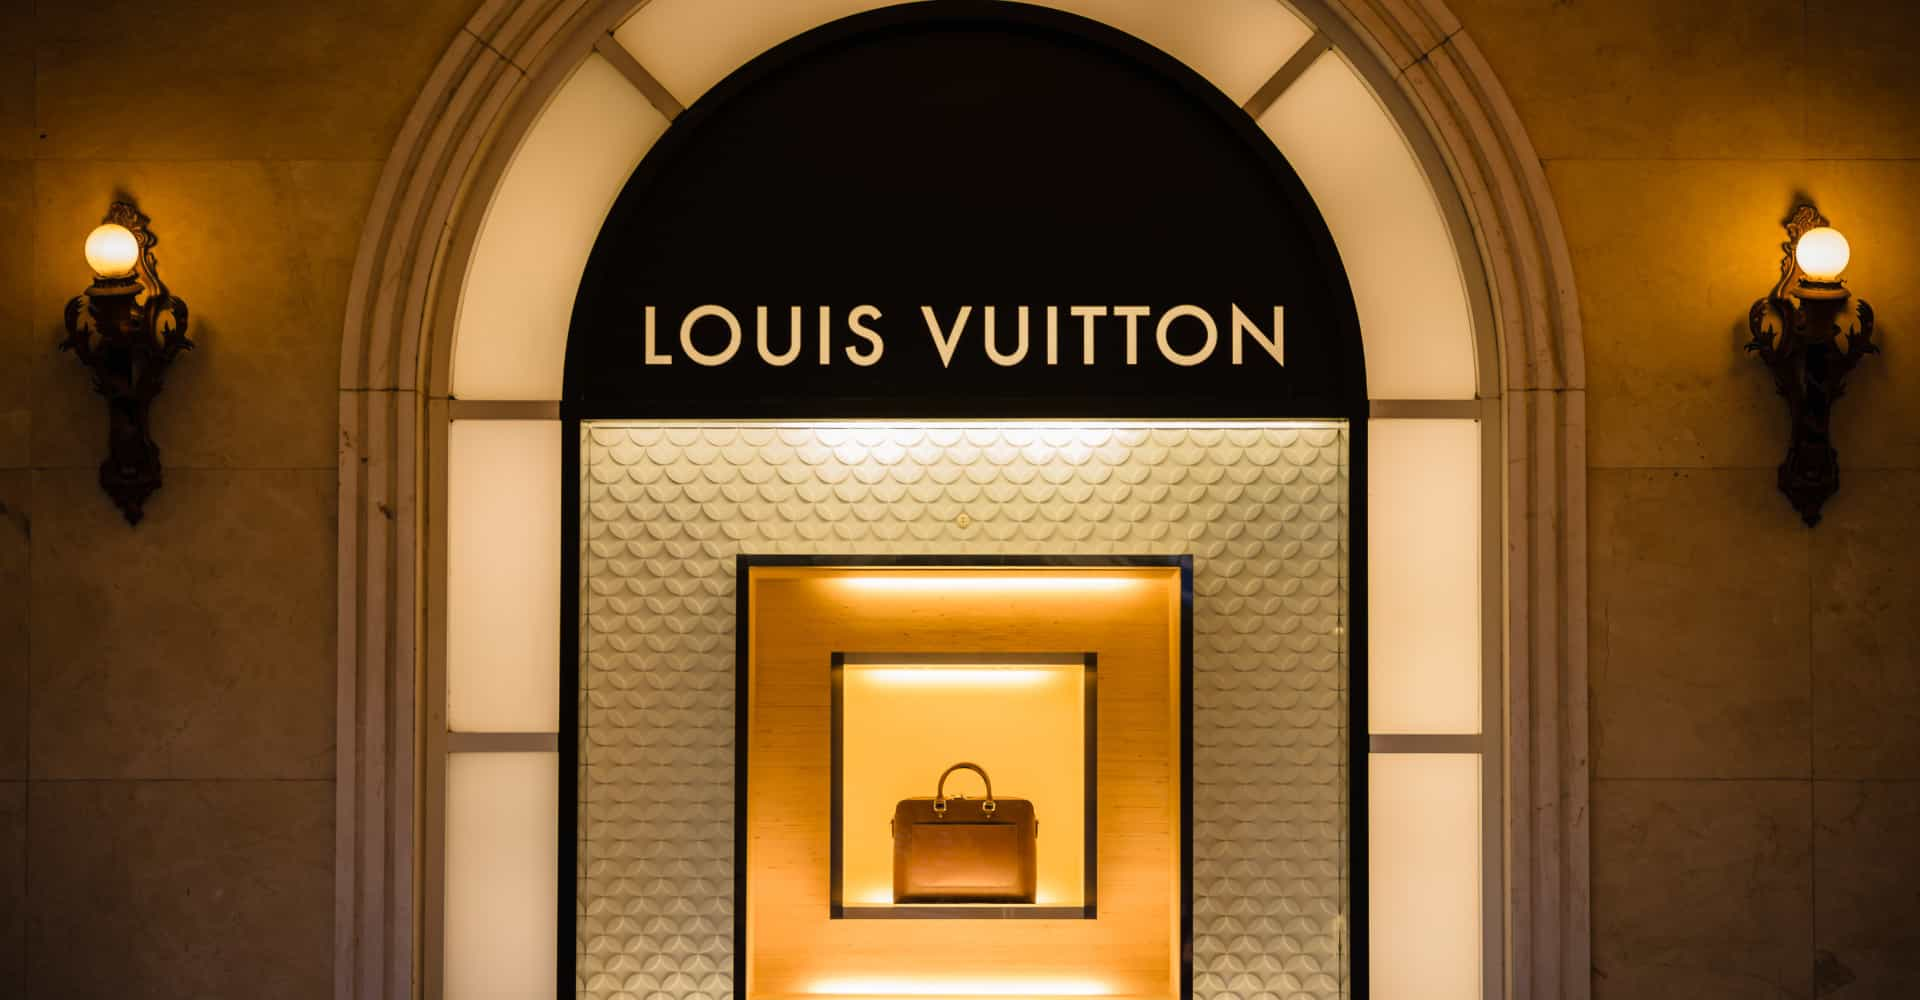 Louis Vuitton model turned convicted murderer: How a social media feud became deadly